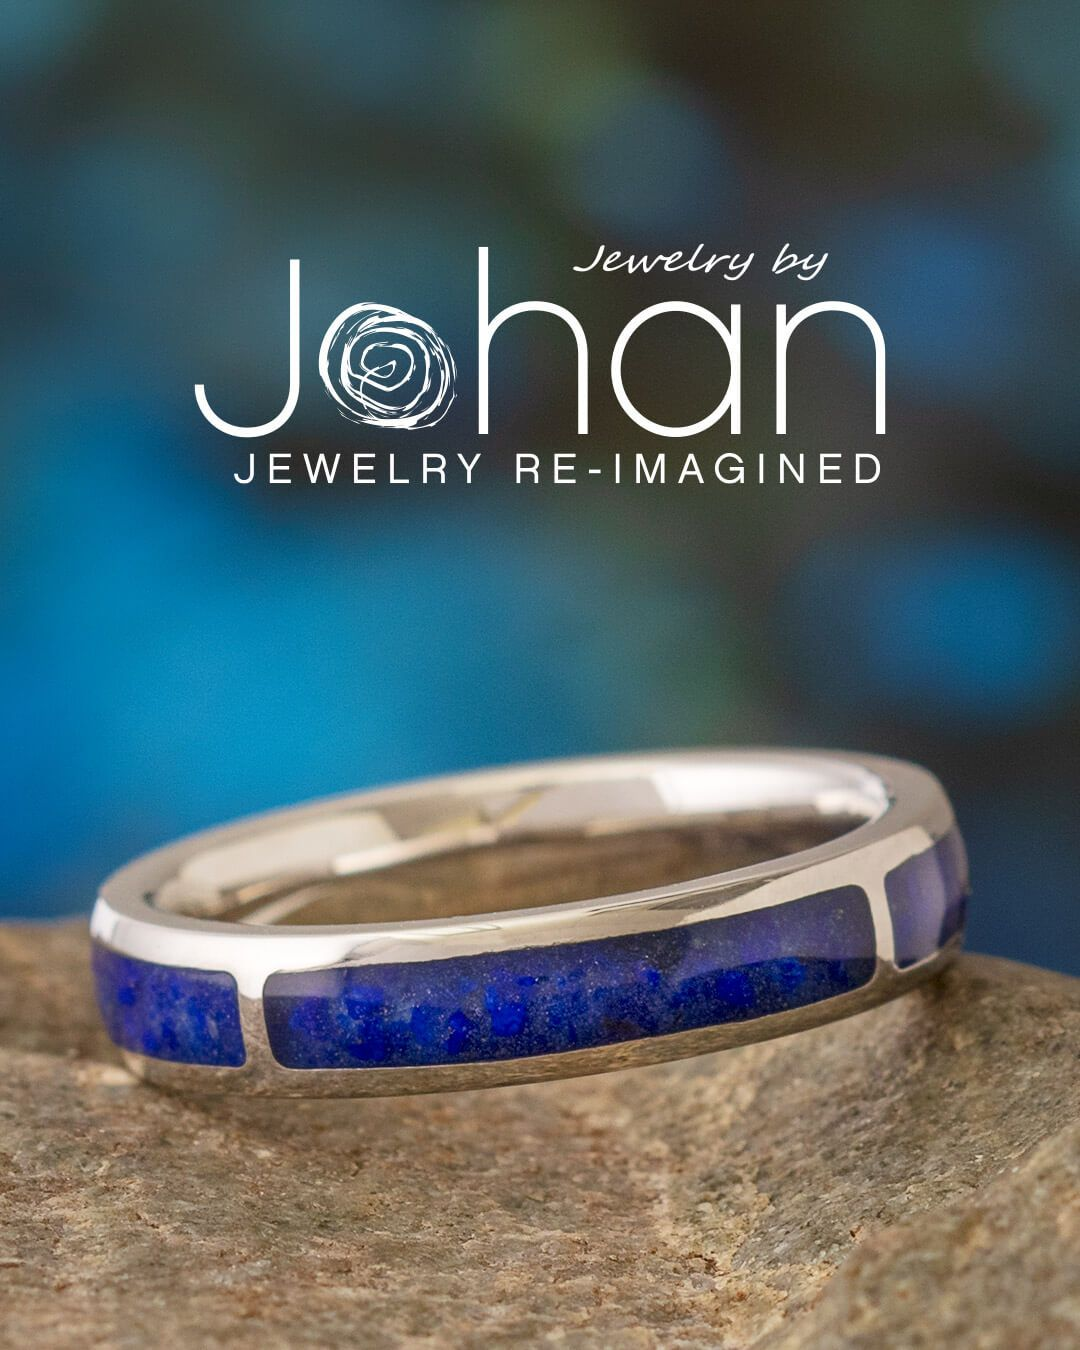 Jewelry by Johan's handmade rings have unique inlays, like this lapis lazuli #weddingband in platinum. #JewelrybyJohan